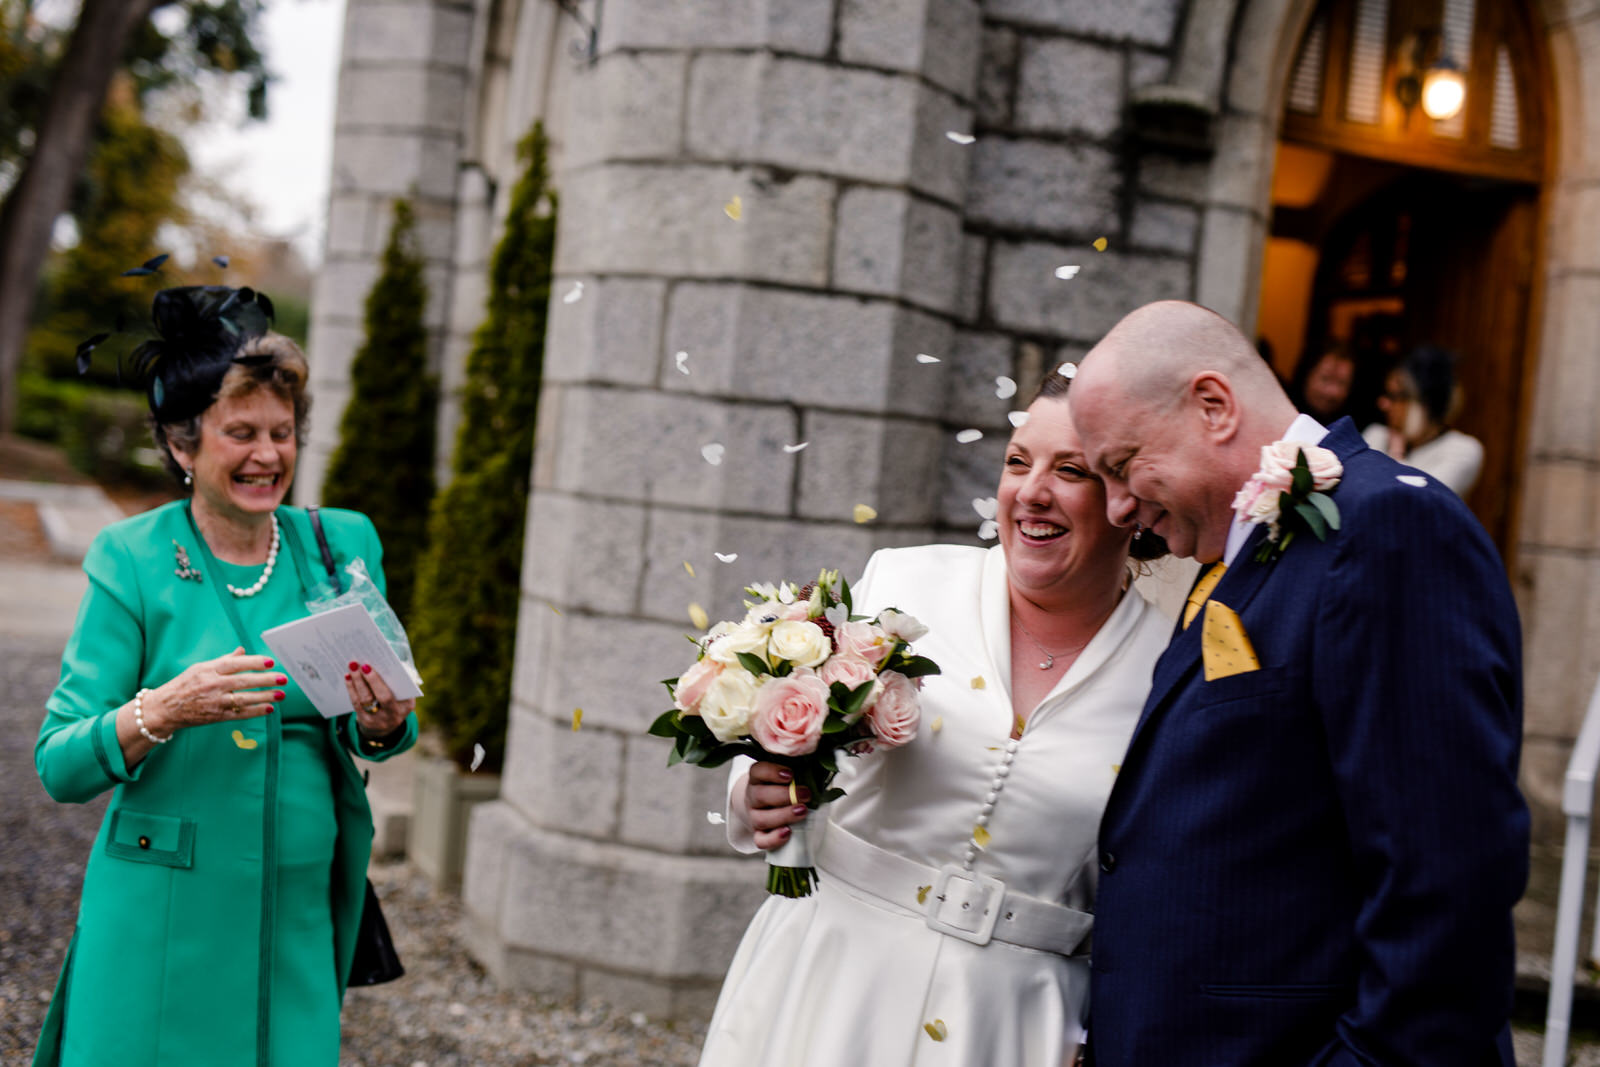 Roger-kenny-wedding-photographer-wicklow-glenview_049.jpg